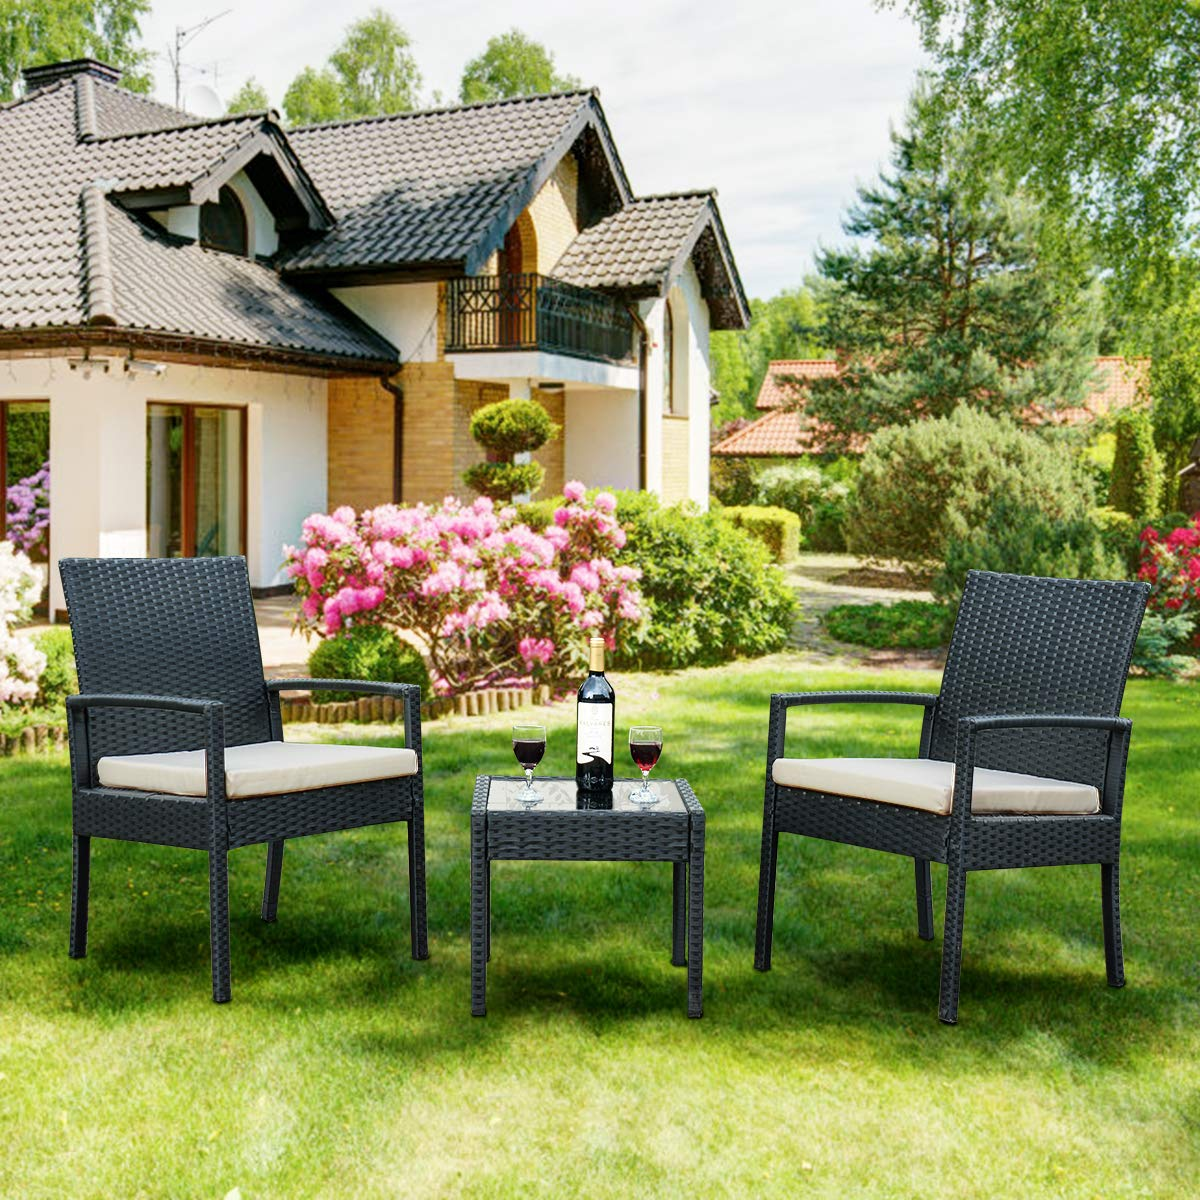 Tangkula 3 piece patio furniture set wicker rattan outdoor patio conversation set with 2 cushioned chairs end table backyard garden lawn chat set chill